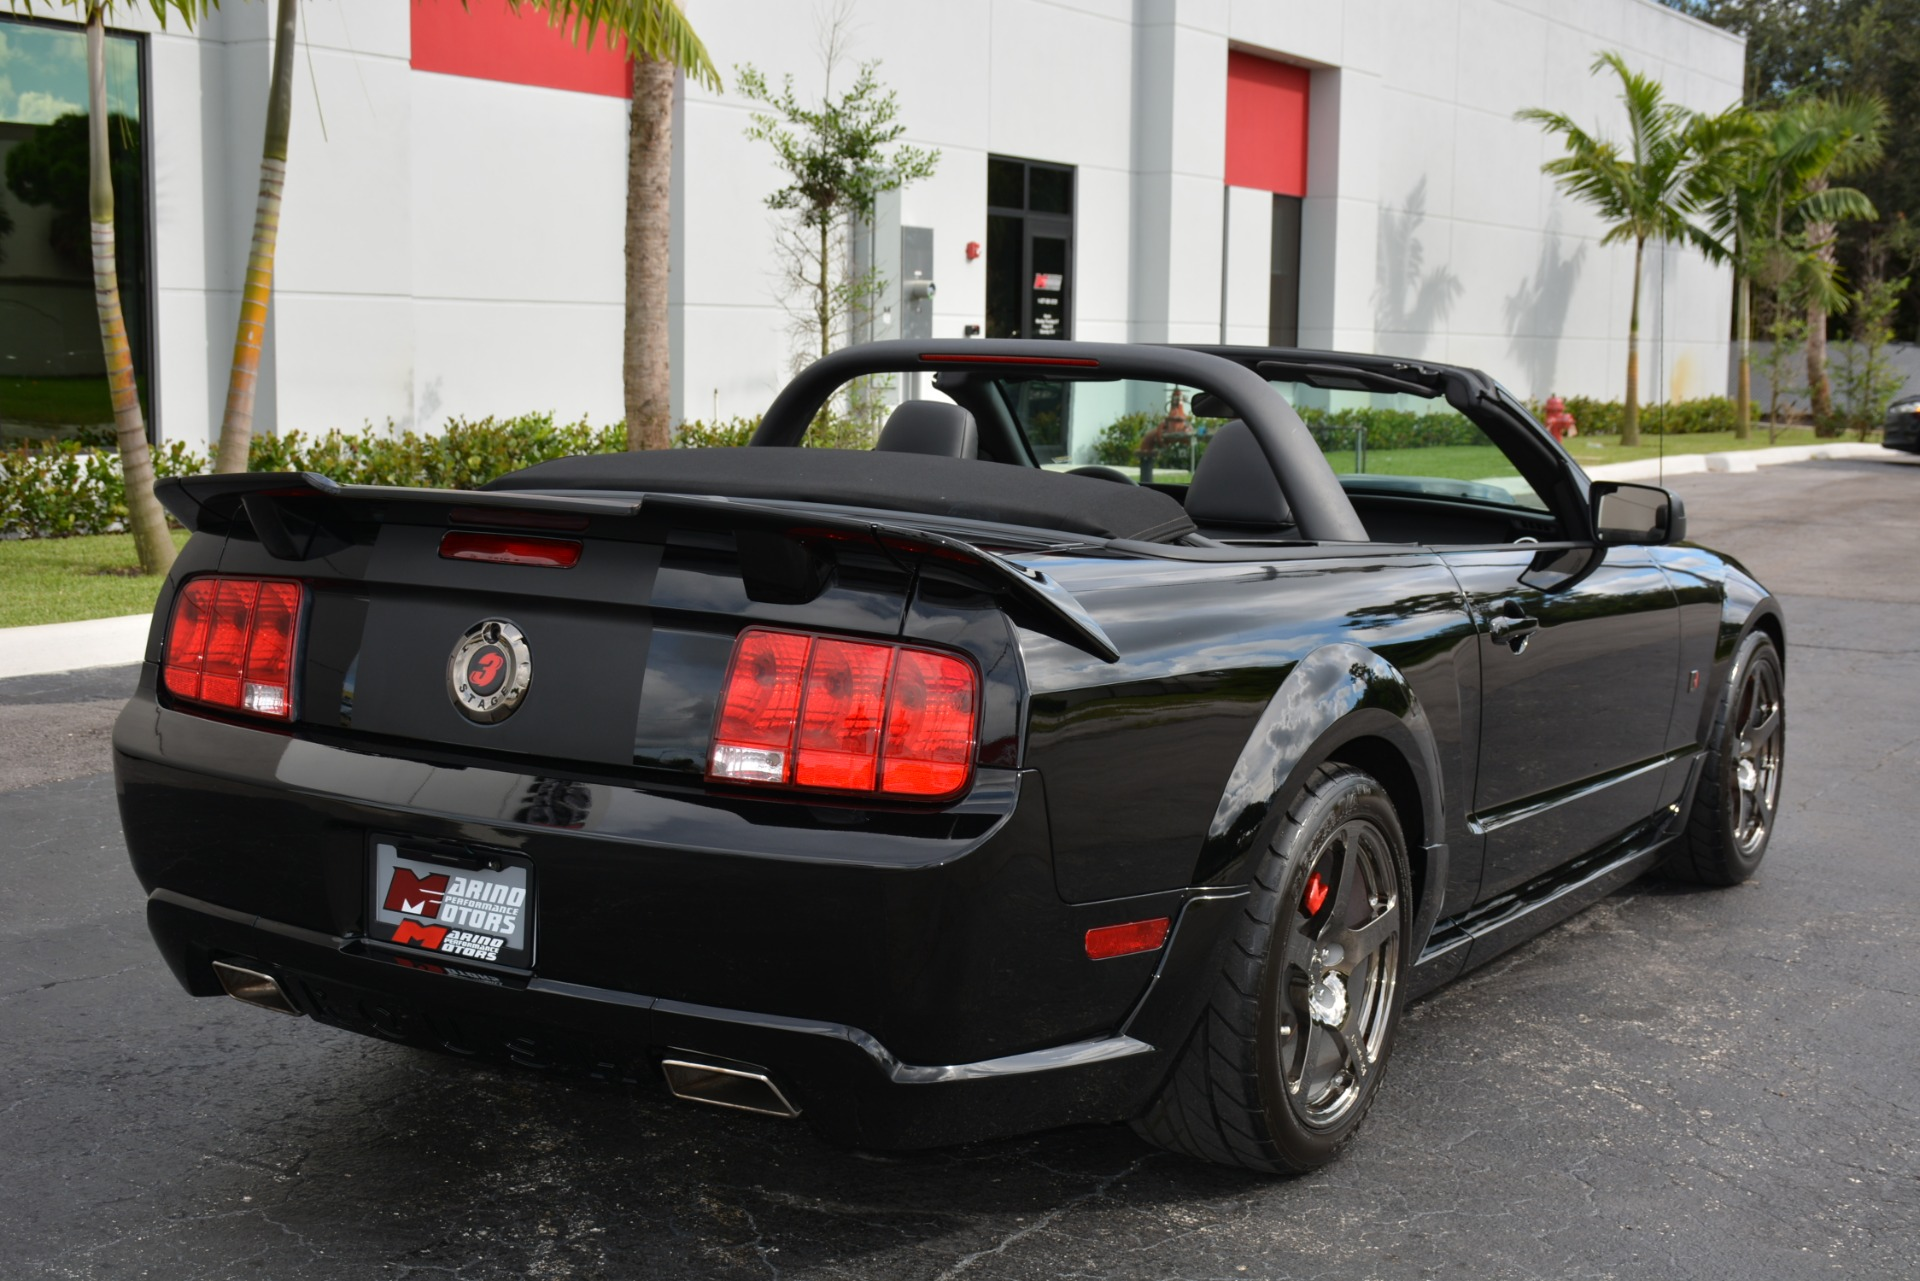 2009 ford mustang roush stage 3 blackjack convertible gt. Black Bedroom Furniture Sets. Home Design Ideas